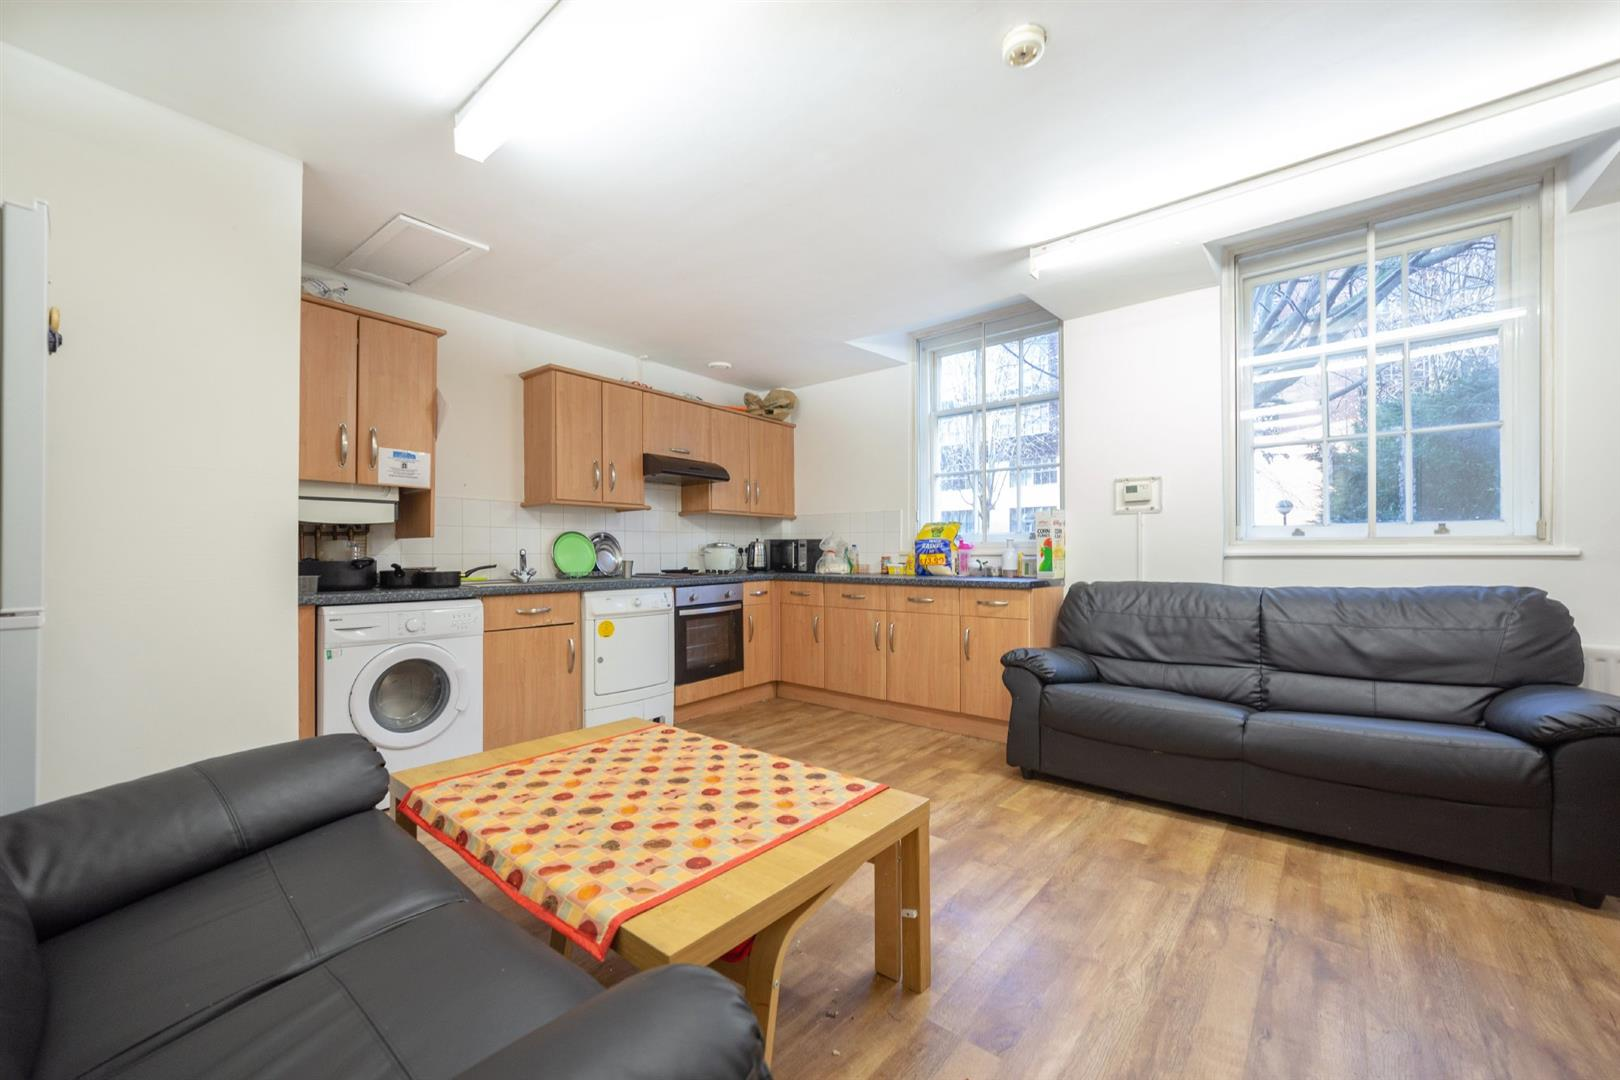 6 bed apartment to rent in Tyne And Wear, NE1 5DZ - Property Image 1